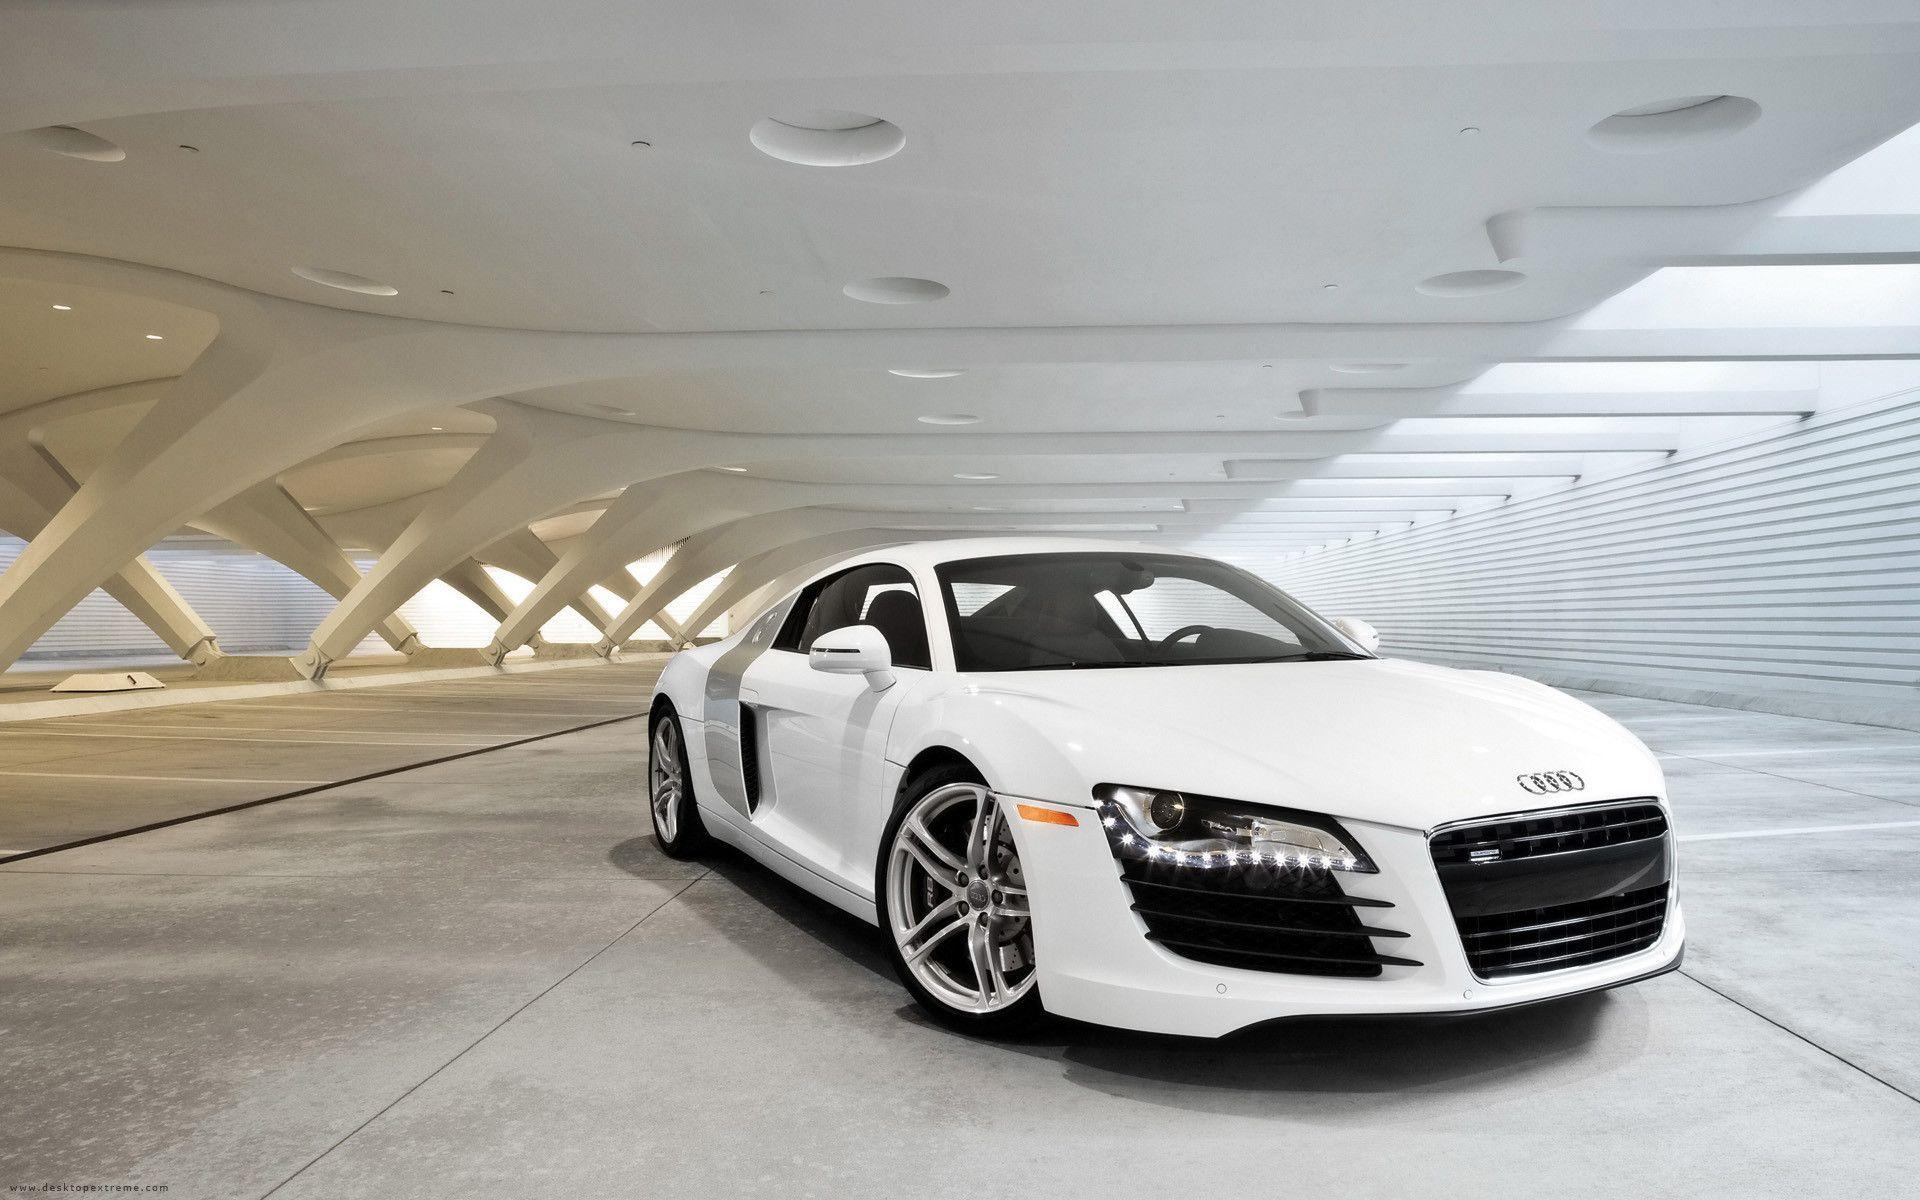 Audi R8 Hd Wallpapers and Backgrounds